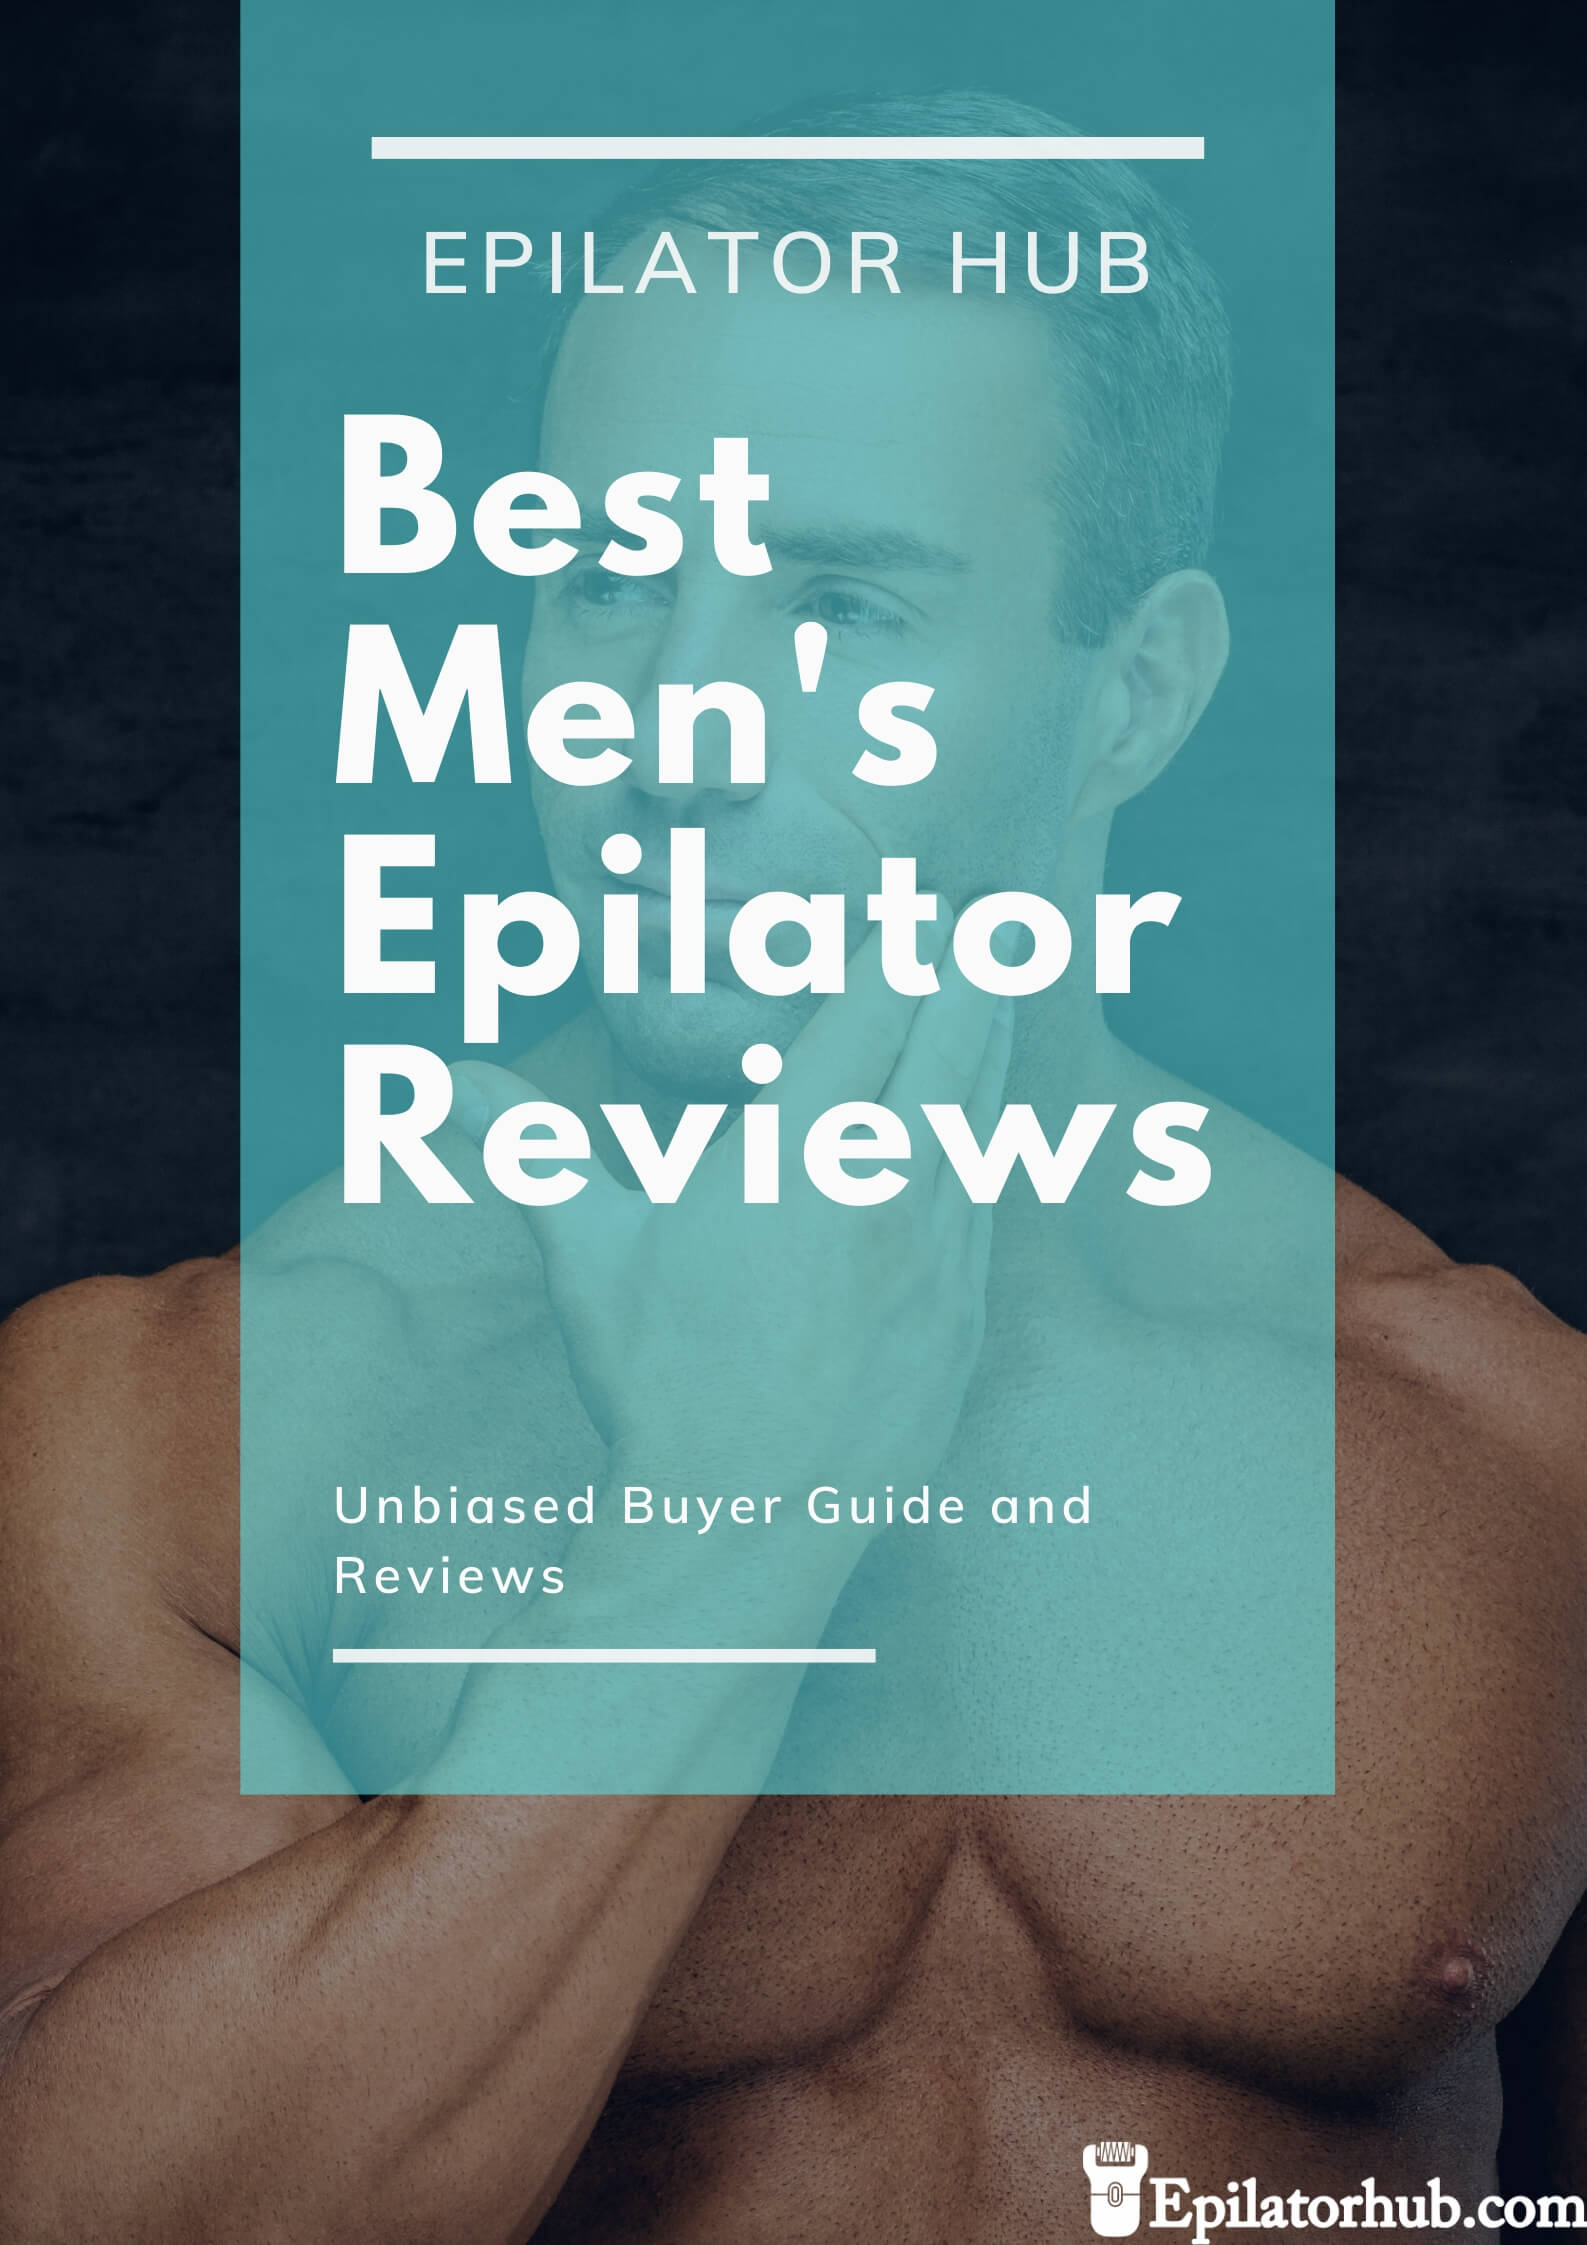 Best Epilator For Men - Top Picks, Reviews & Buyer Guide